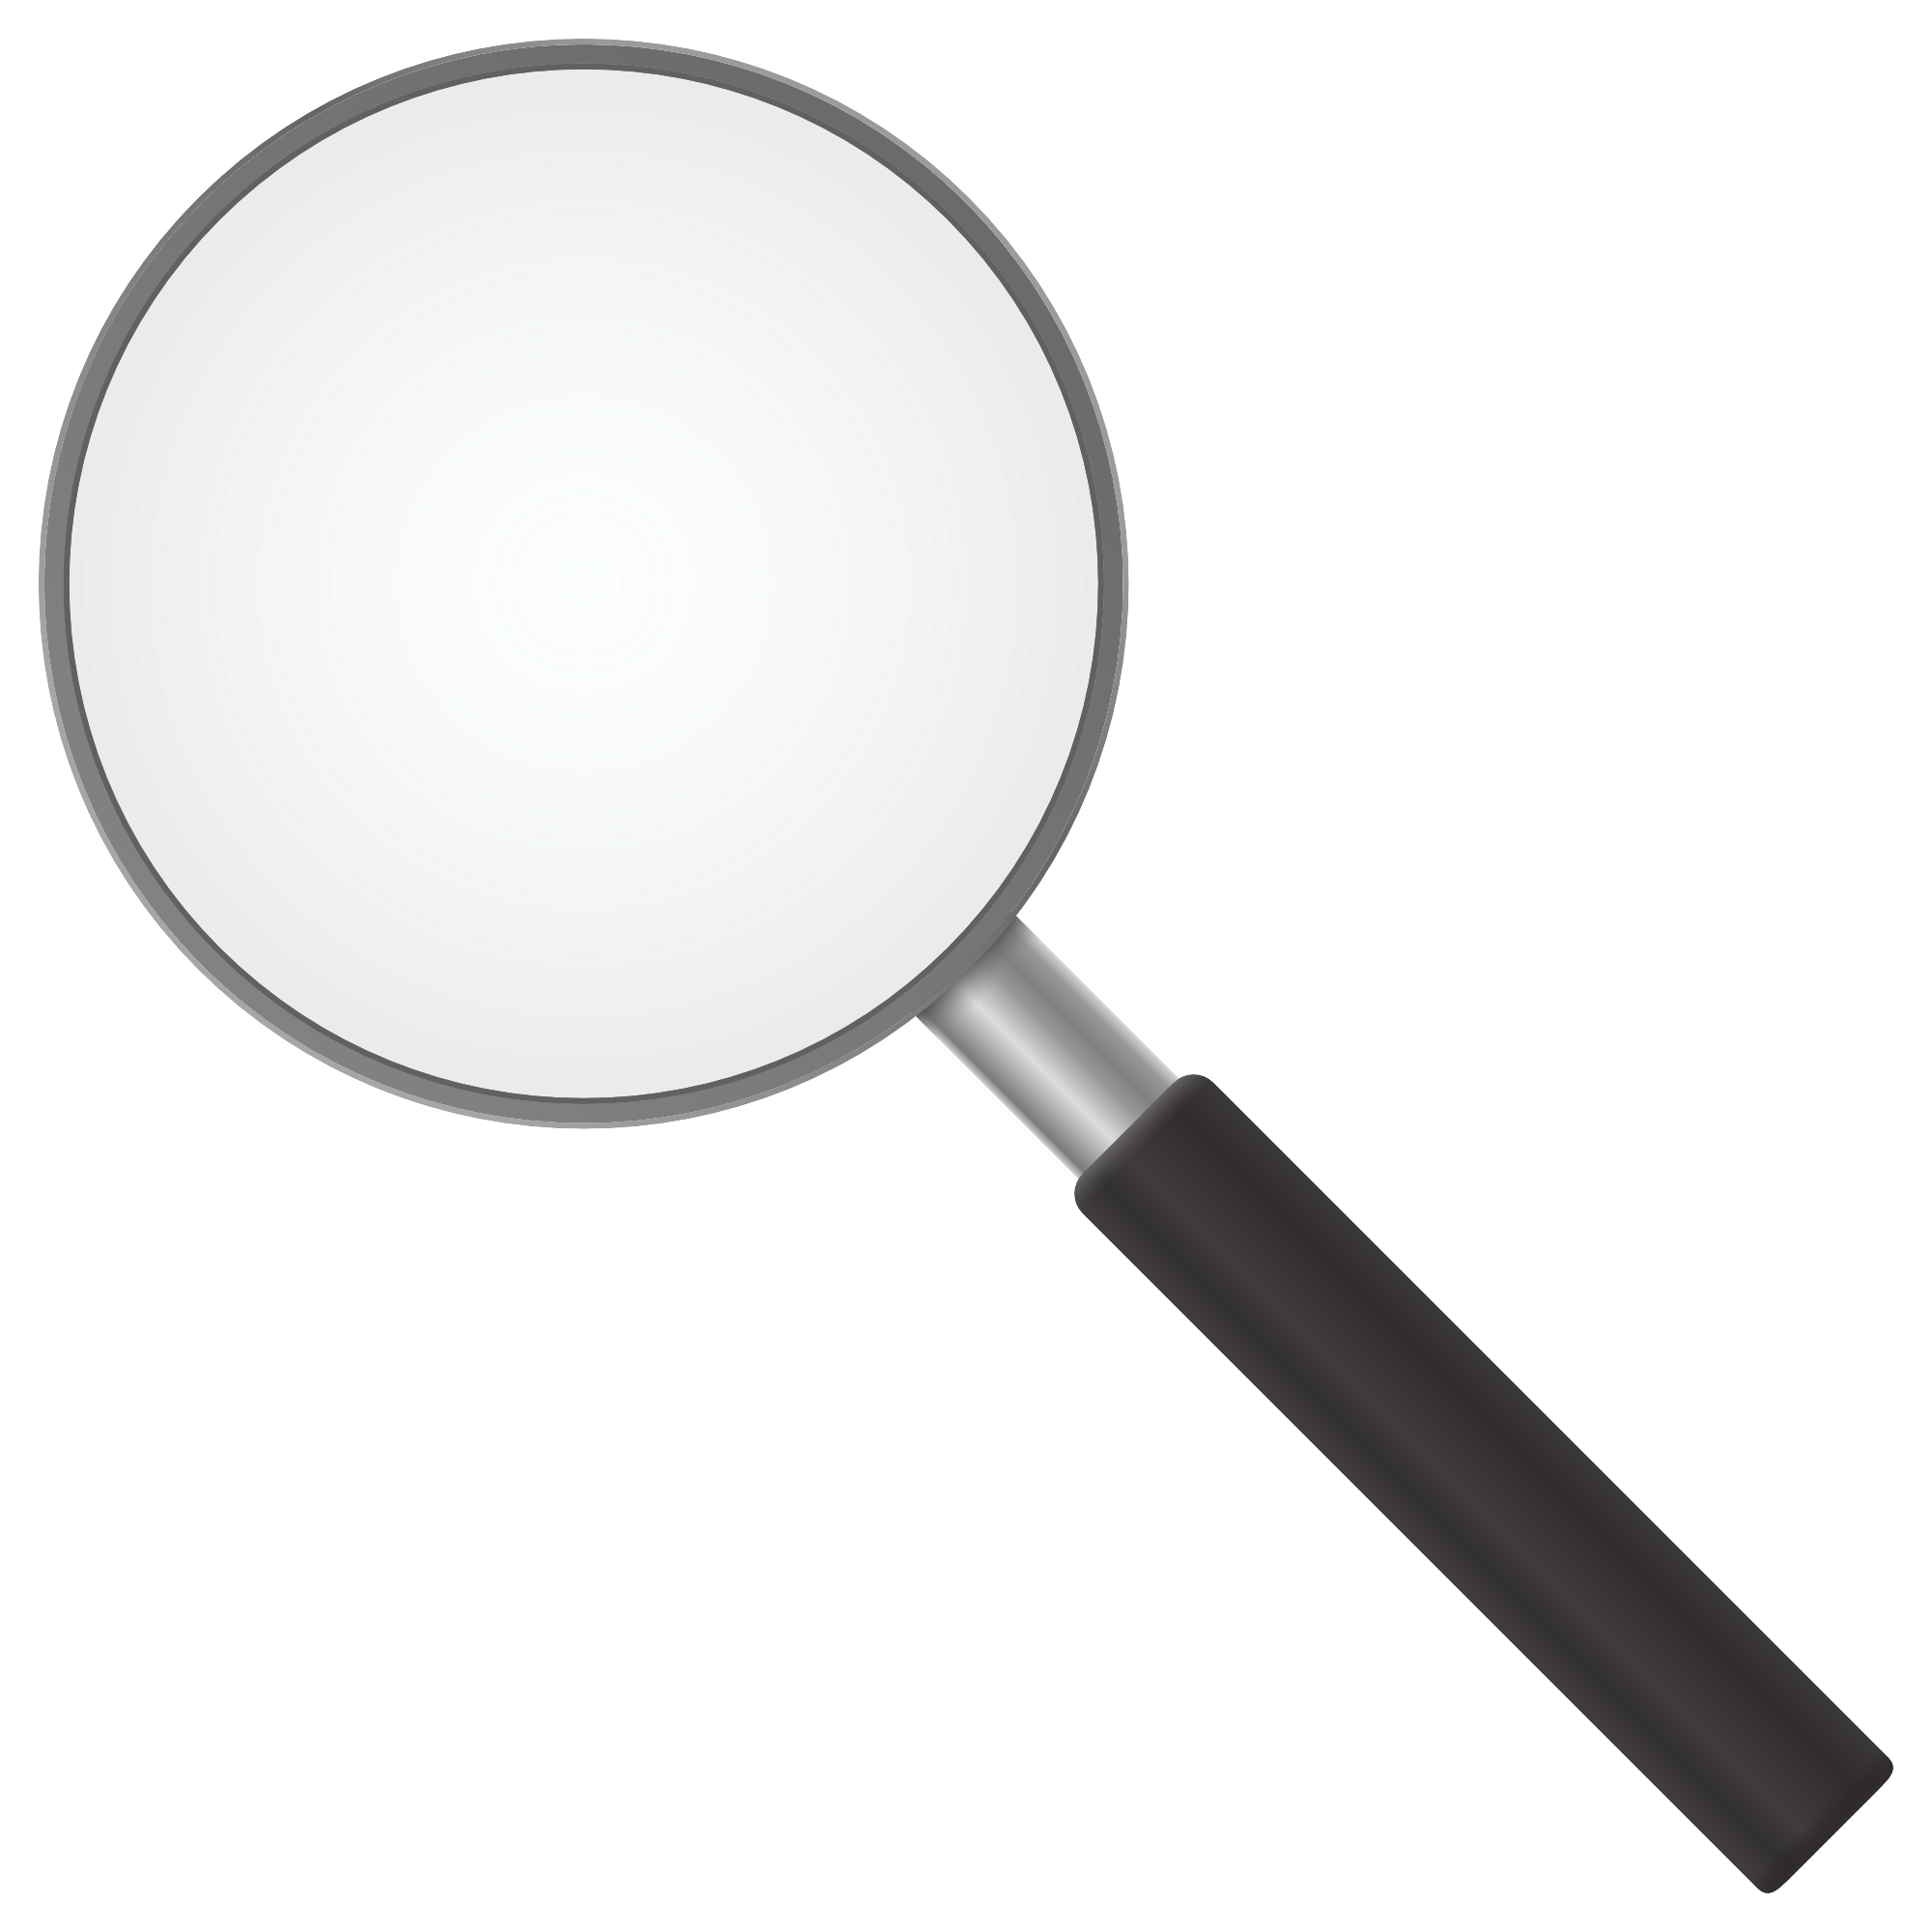 2000x2000 Magnifying Glass Png Transparent Image